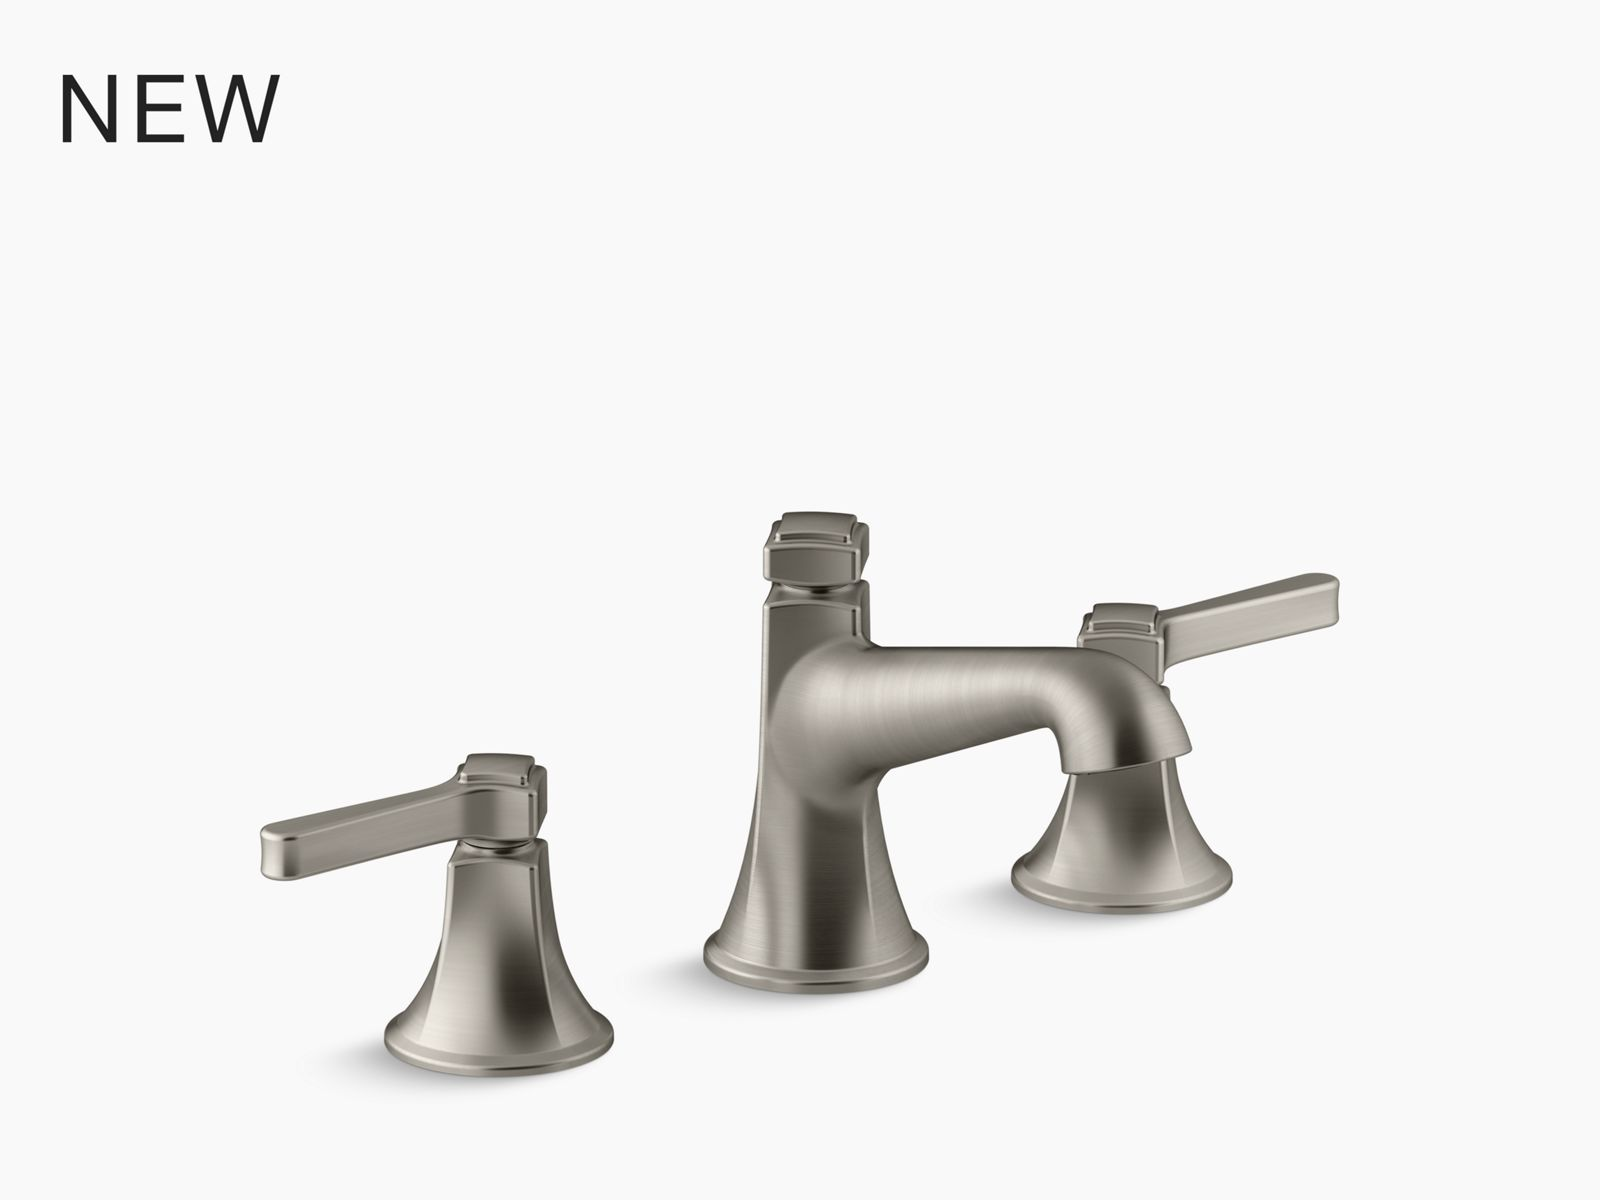 setra kitchen faucet with kohler konnect and voice activated technology